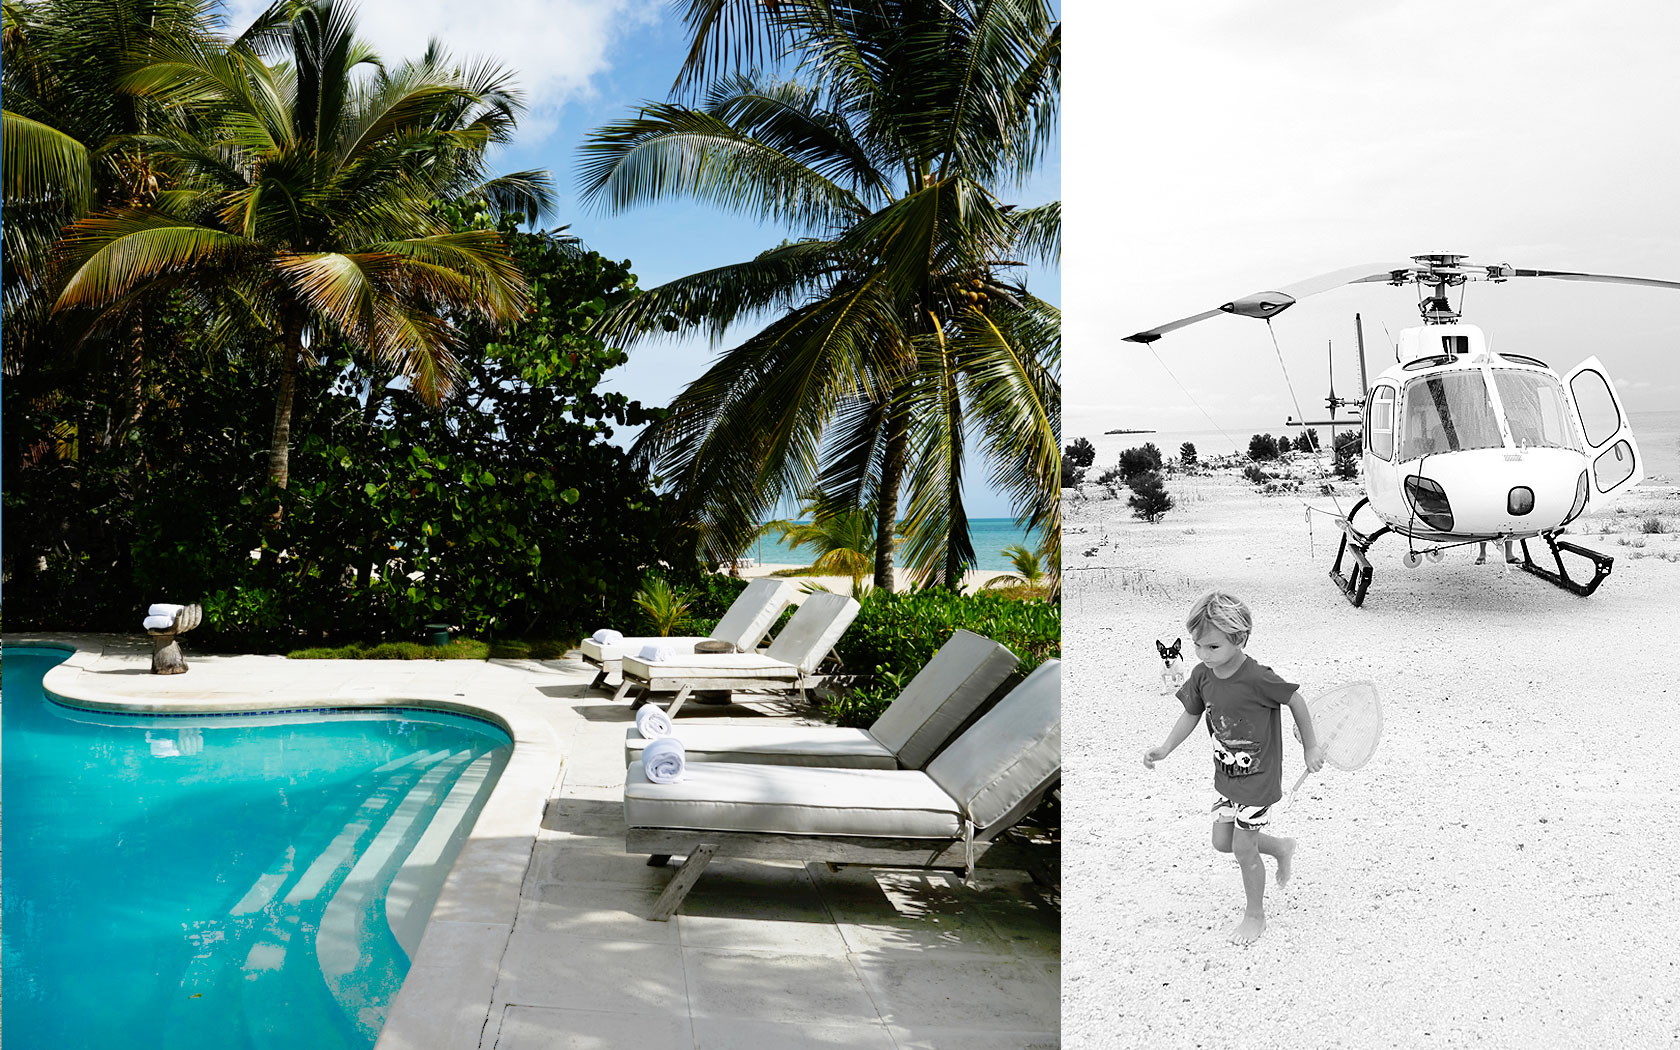 lounge chairs by the pool and a black and white photo of a kid on the beach with a helicopter in the background